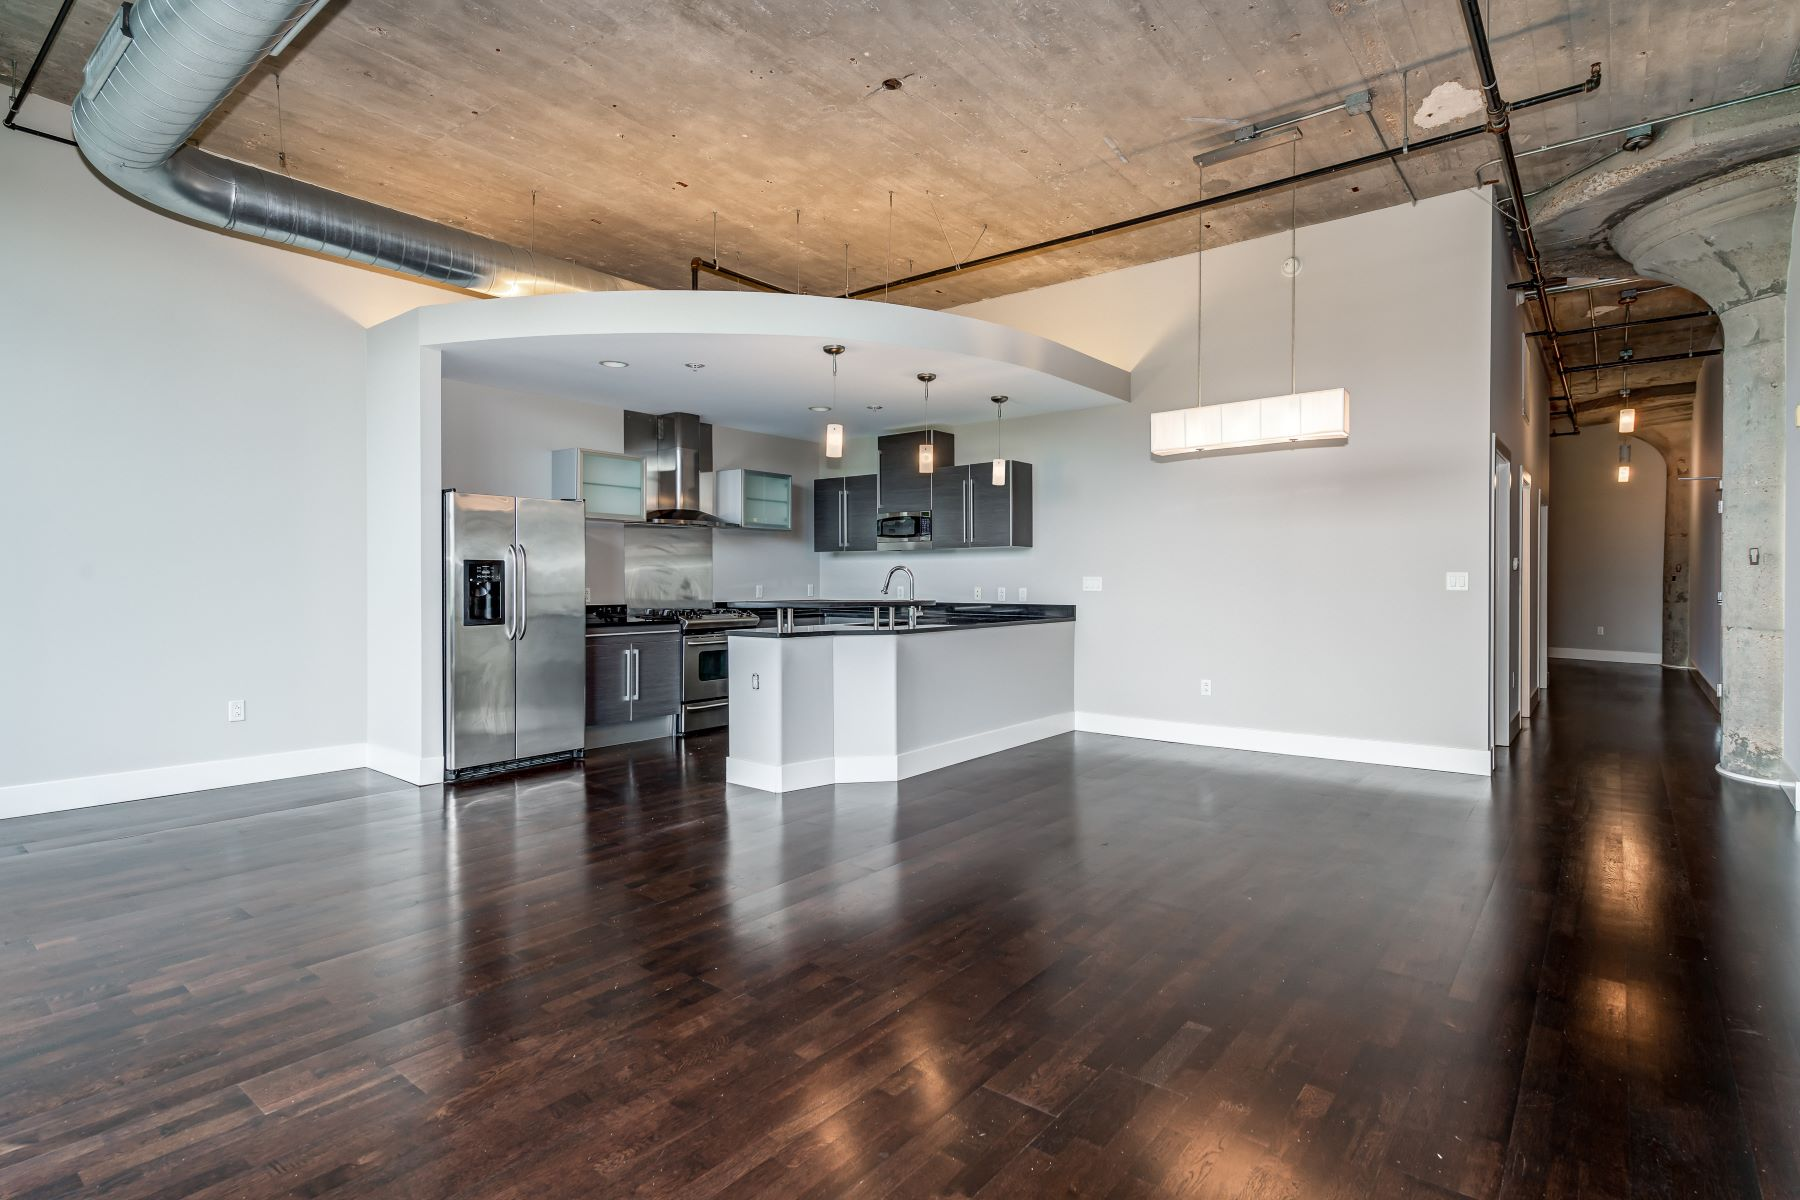 Additional photo for property listing at West End Lofts #305 4100 Forest Park Ave #305 St. Louis, Missouri 63108 United States